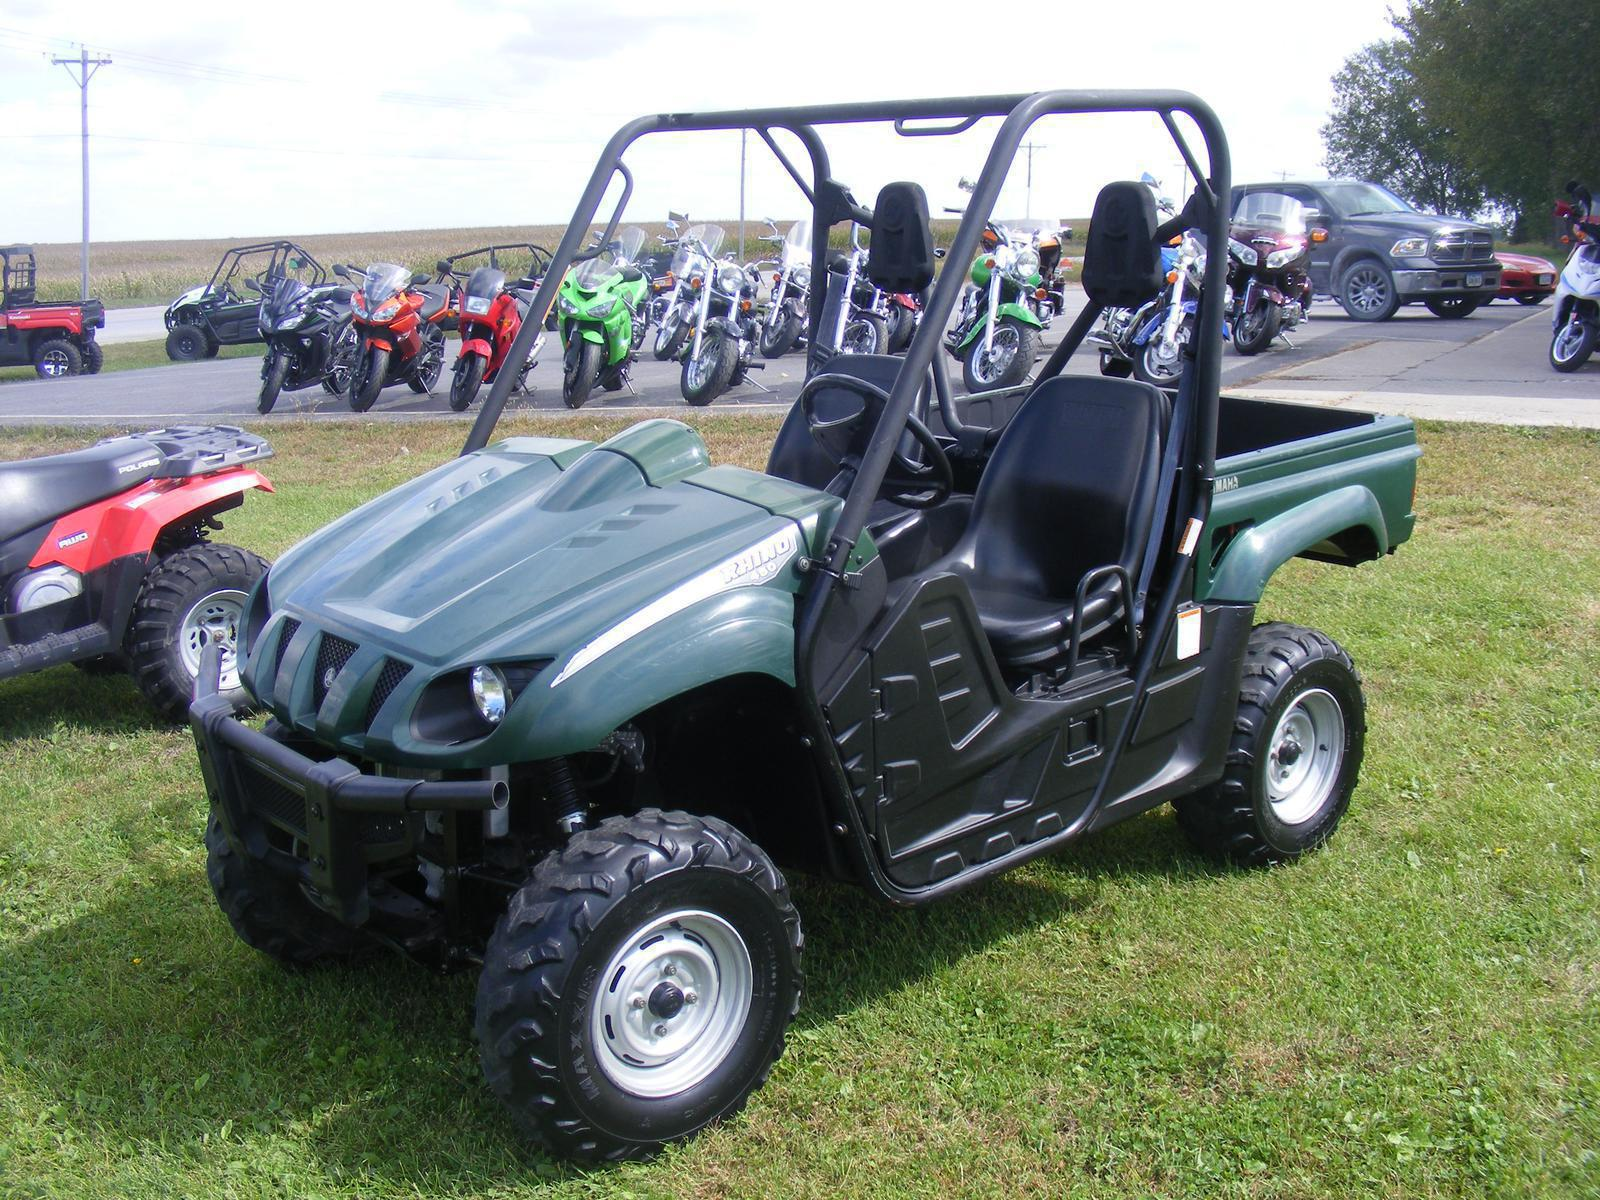 2007 Yamaha Rhino 450 For Sale In Fort Dodge Ia Racing Unlimited Fuel Filter Location Dscf6215